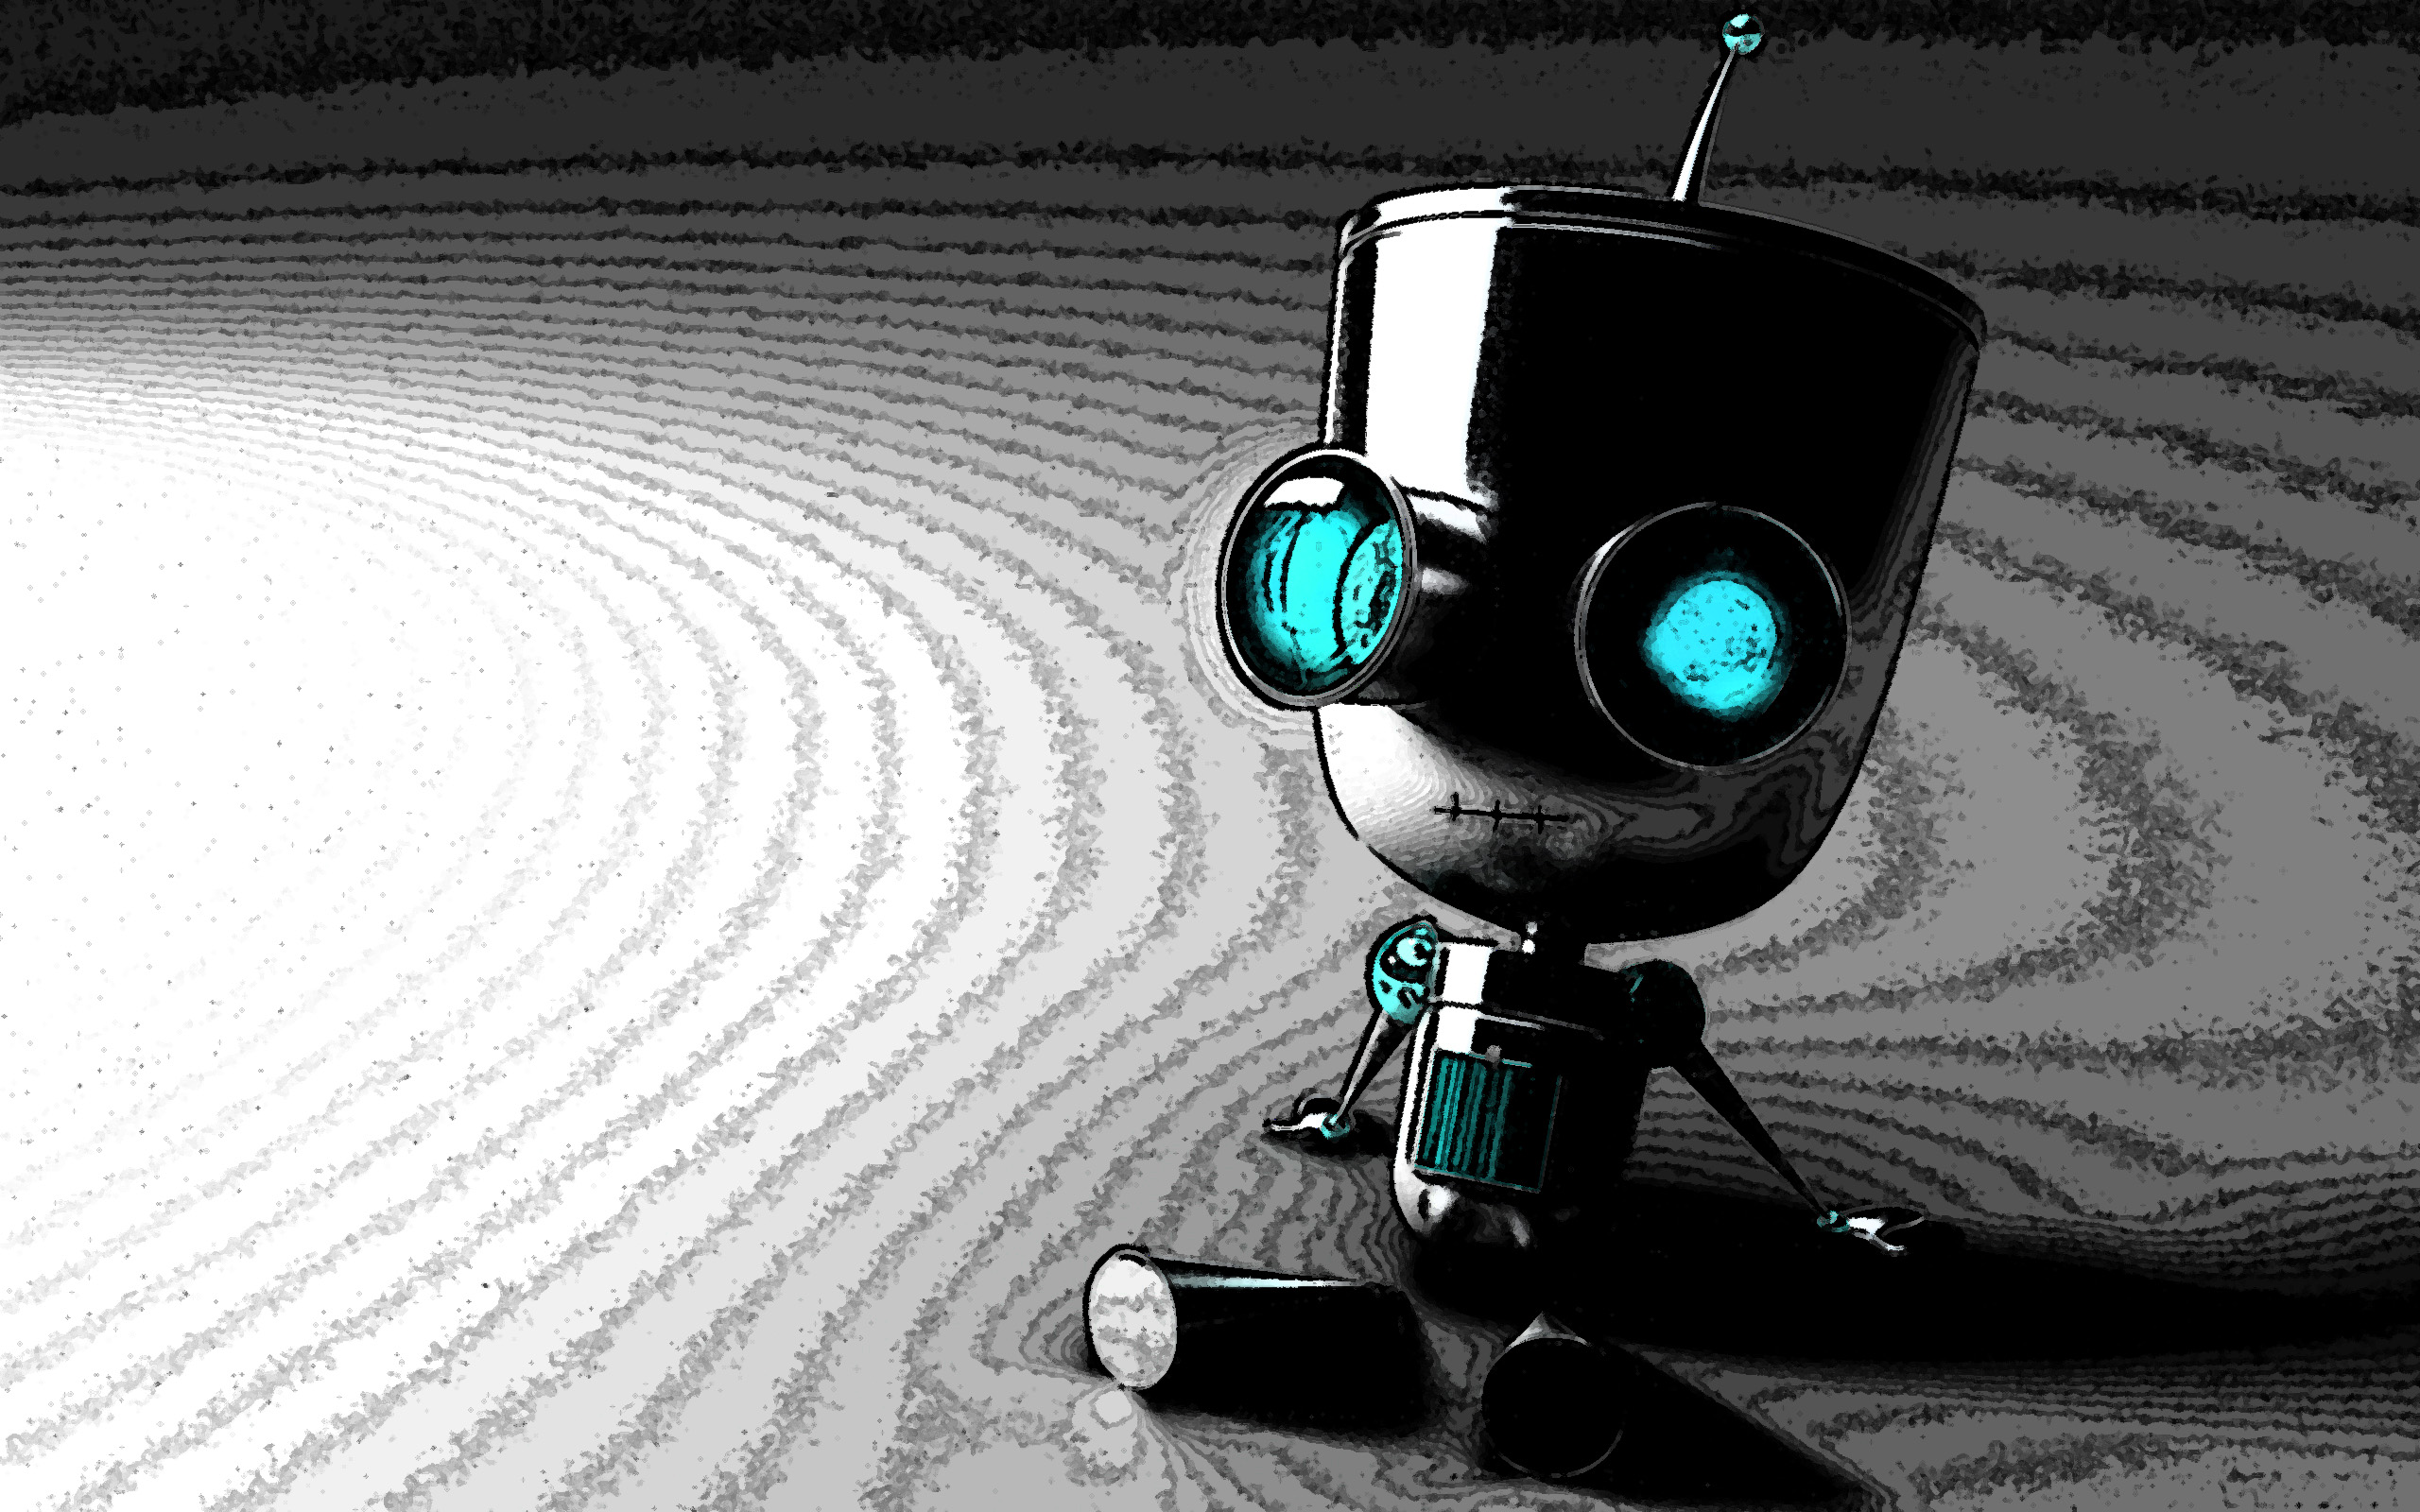 Robot Wallpaper 9407 2560x1600 px ~ HDWallSource.com